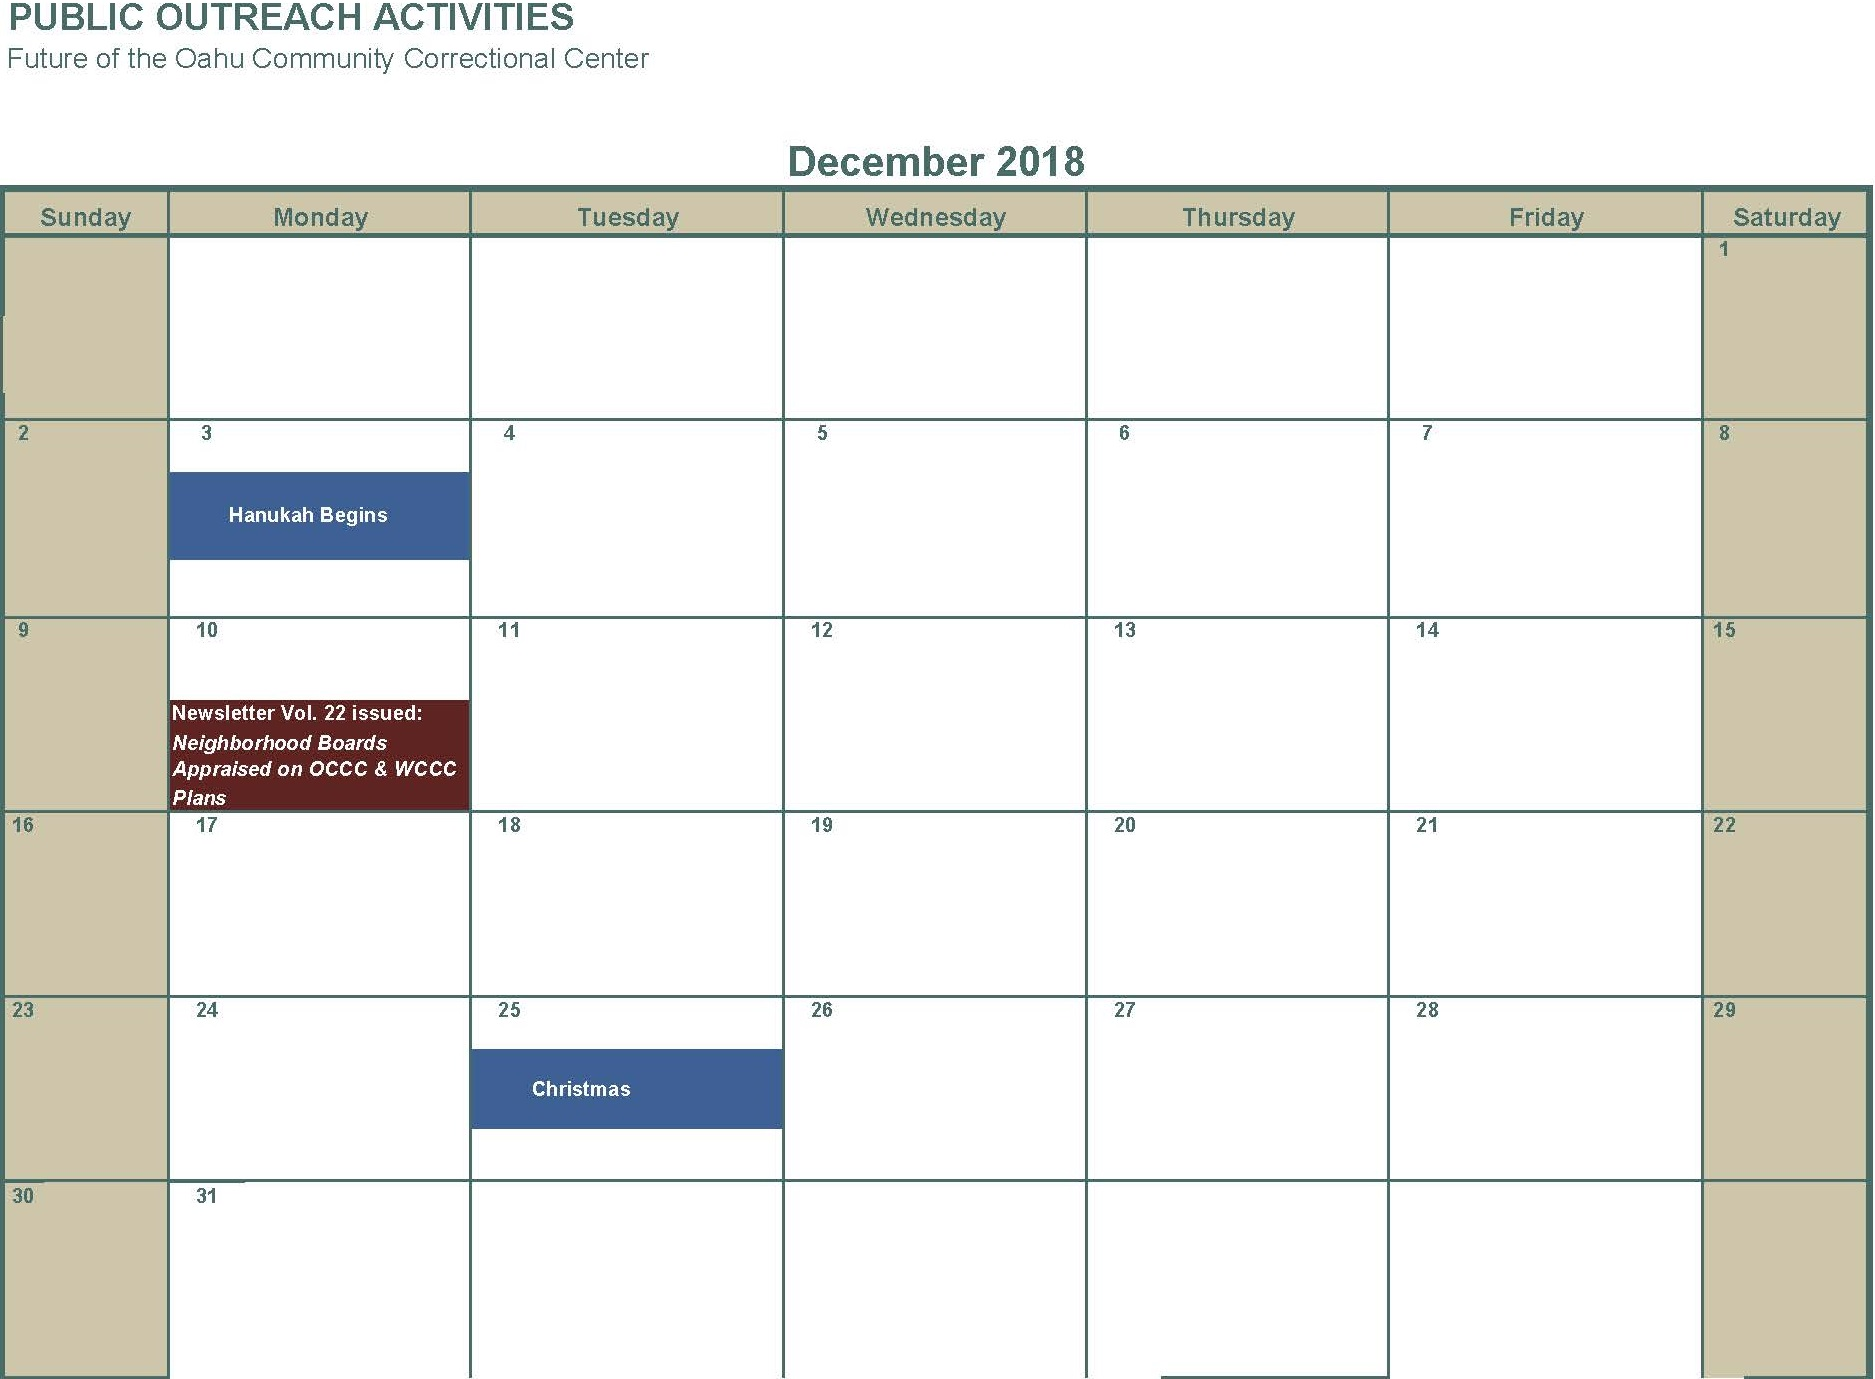 December 2018 Newsletter Neighborhood Boards Appraised on OCCC WCCC plans